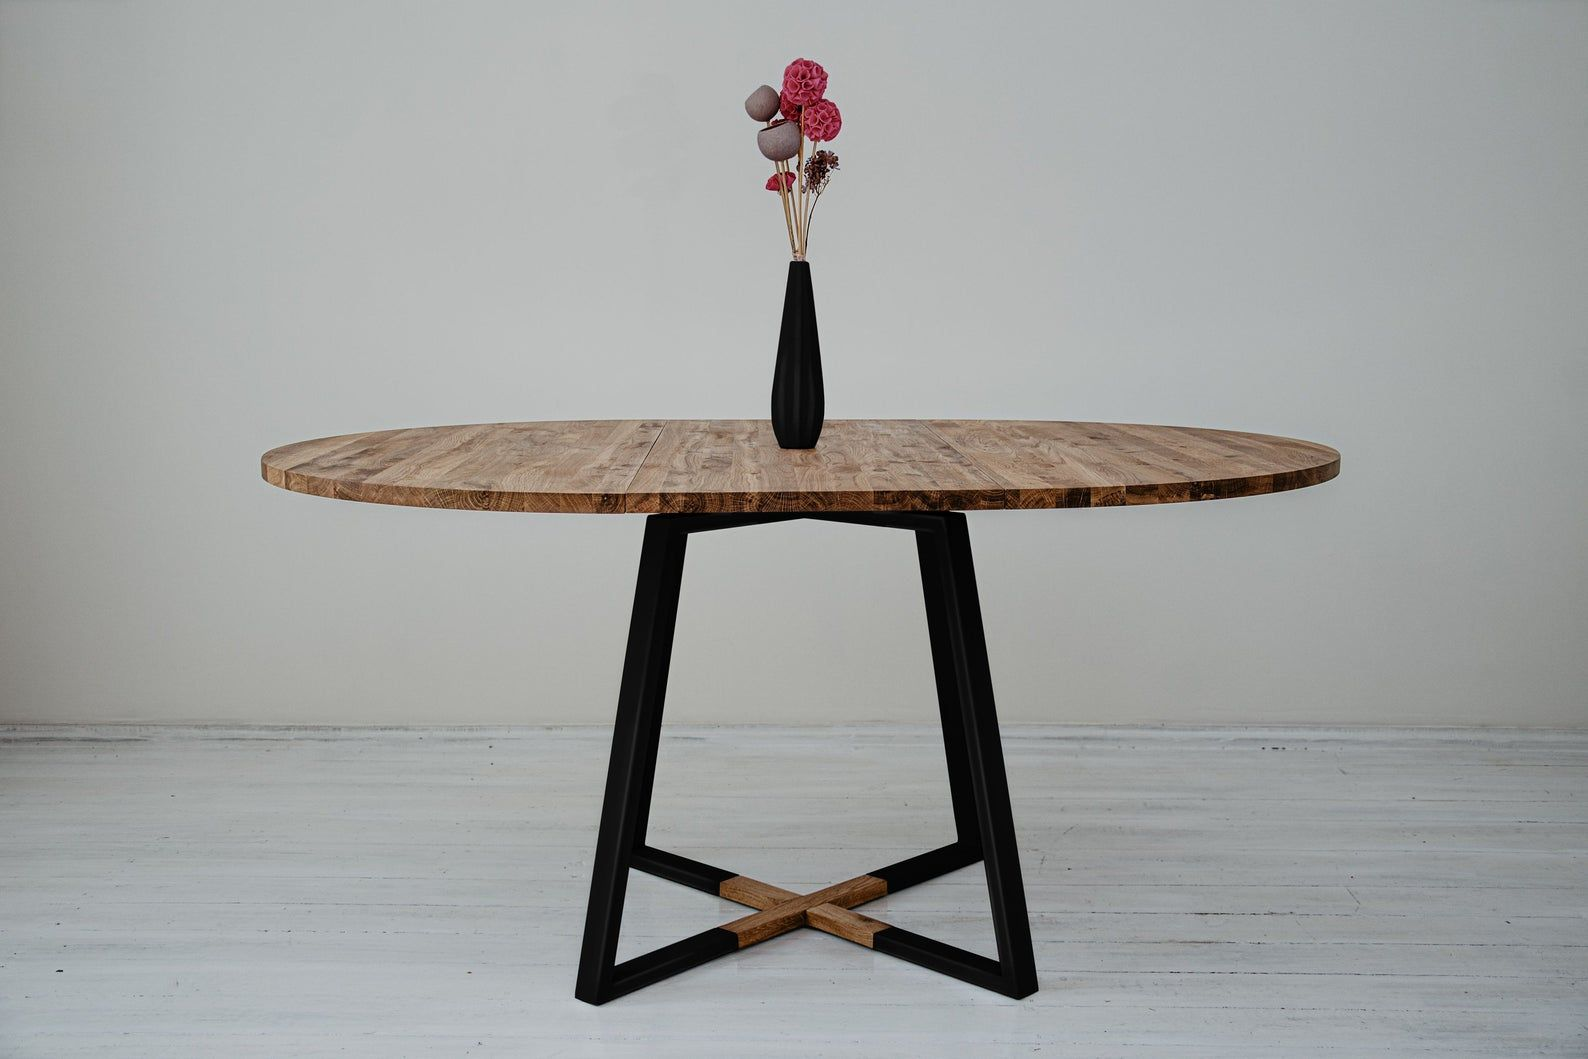 Modern Industrial dining table Contemporary Extendable round solid oak wood table Powder coated metal base MÅNE BLACK